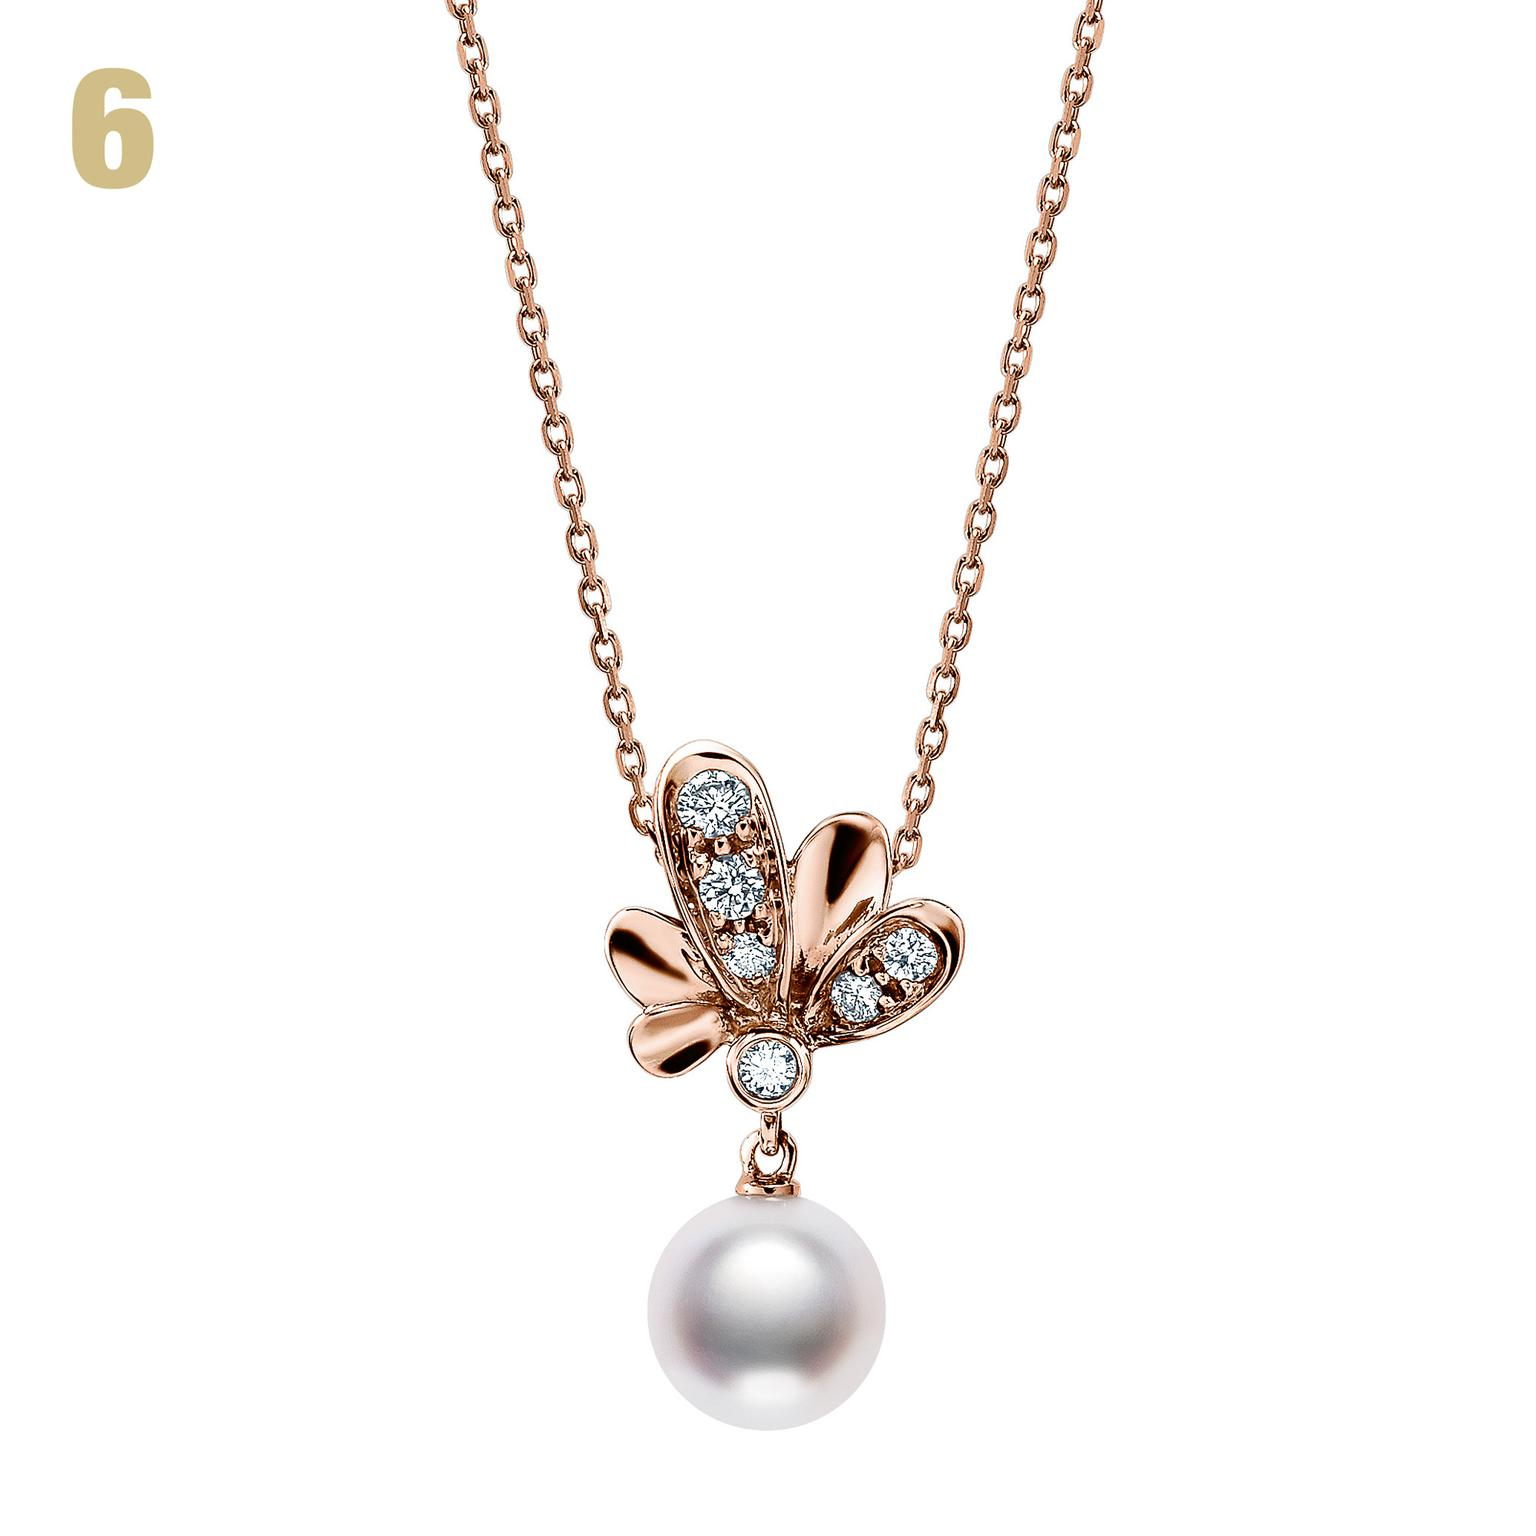 lustrous sold lane mikimoto pic pearl f necklace s pendant item akoya vintage ruby